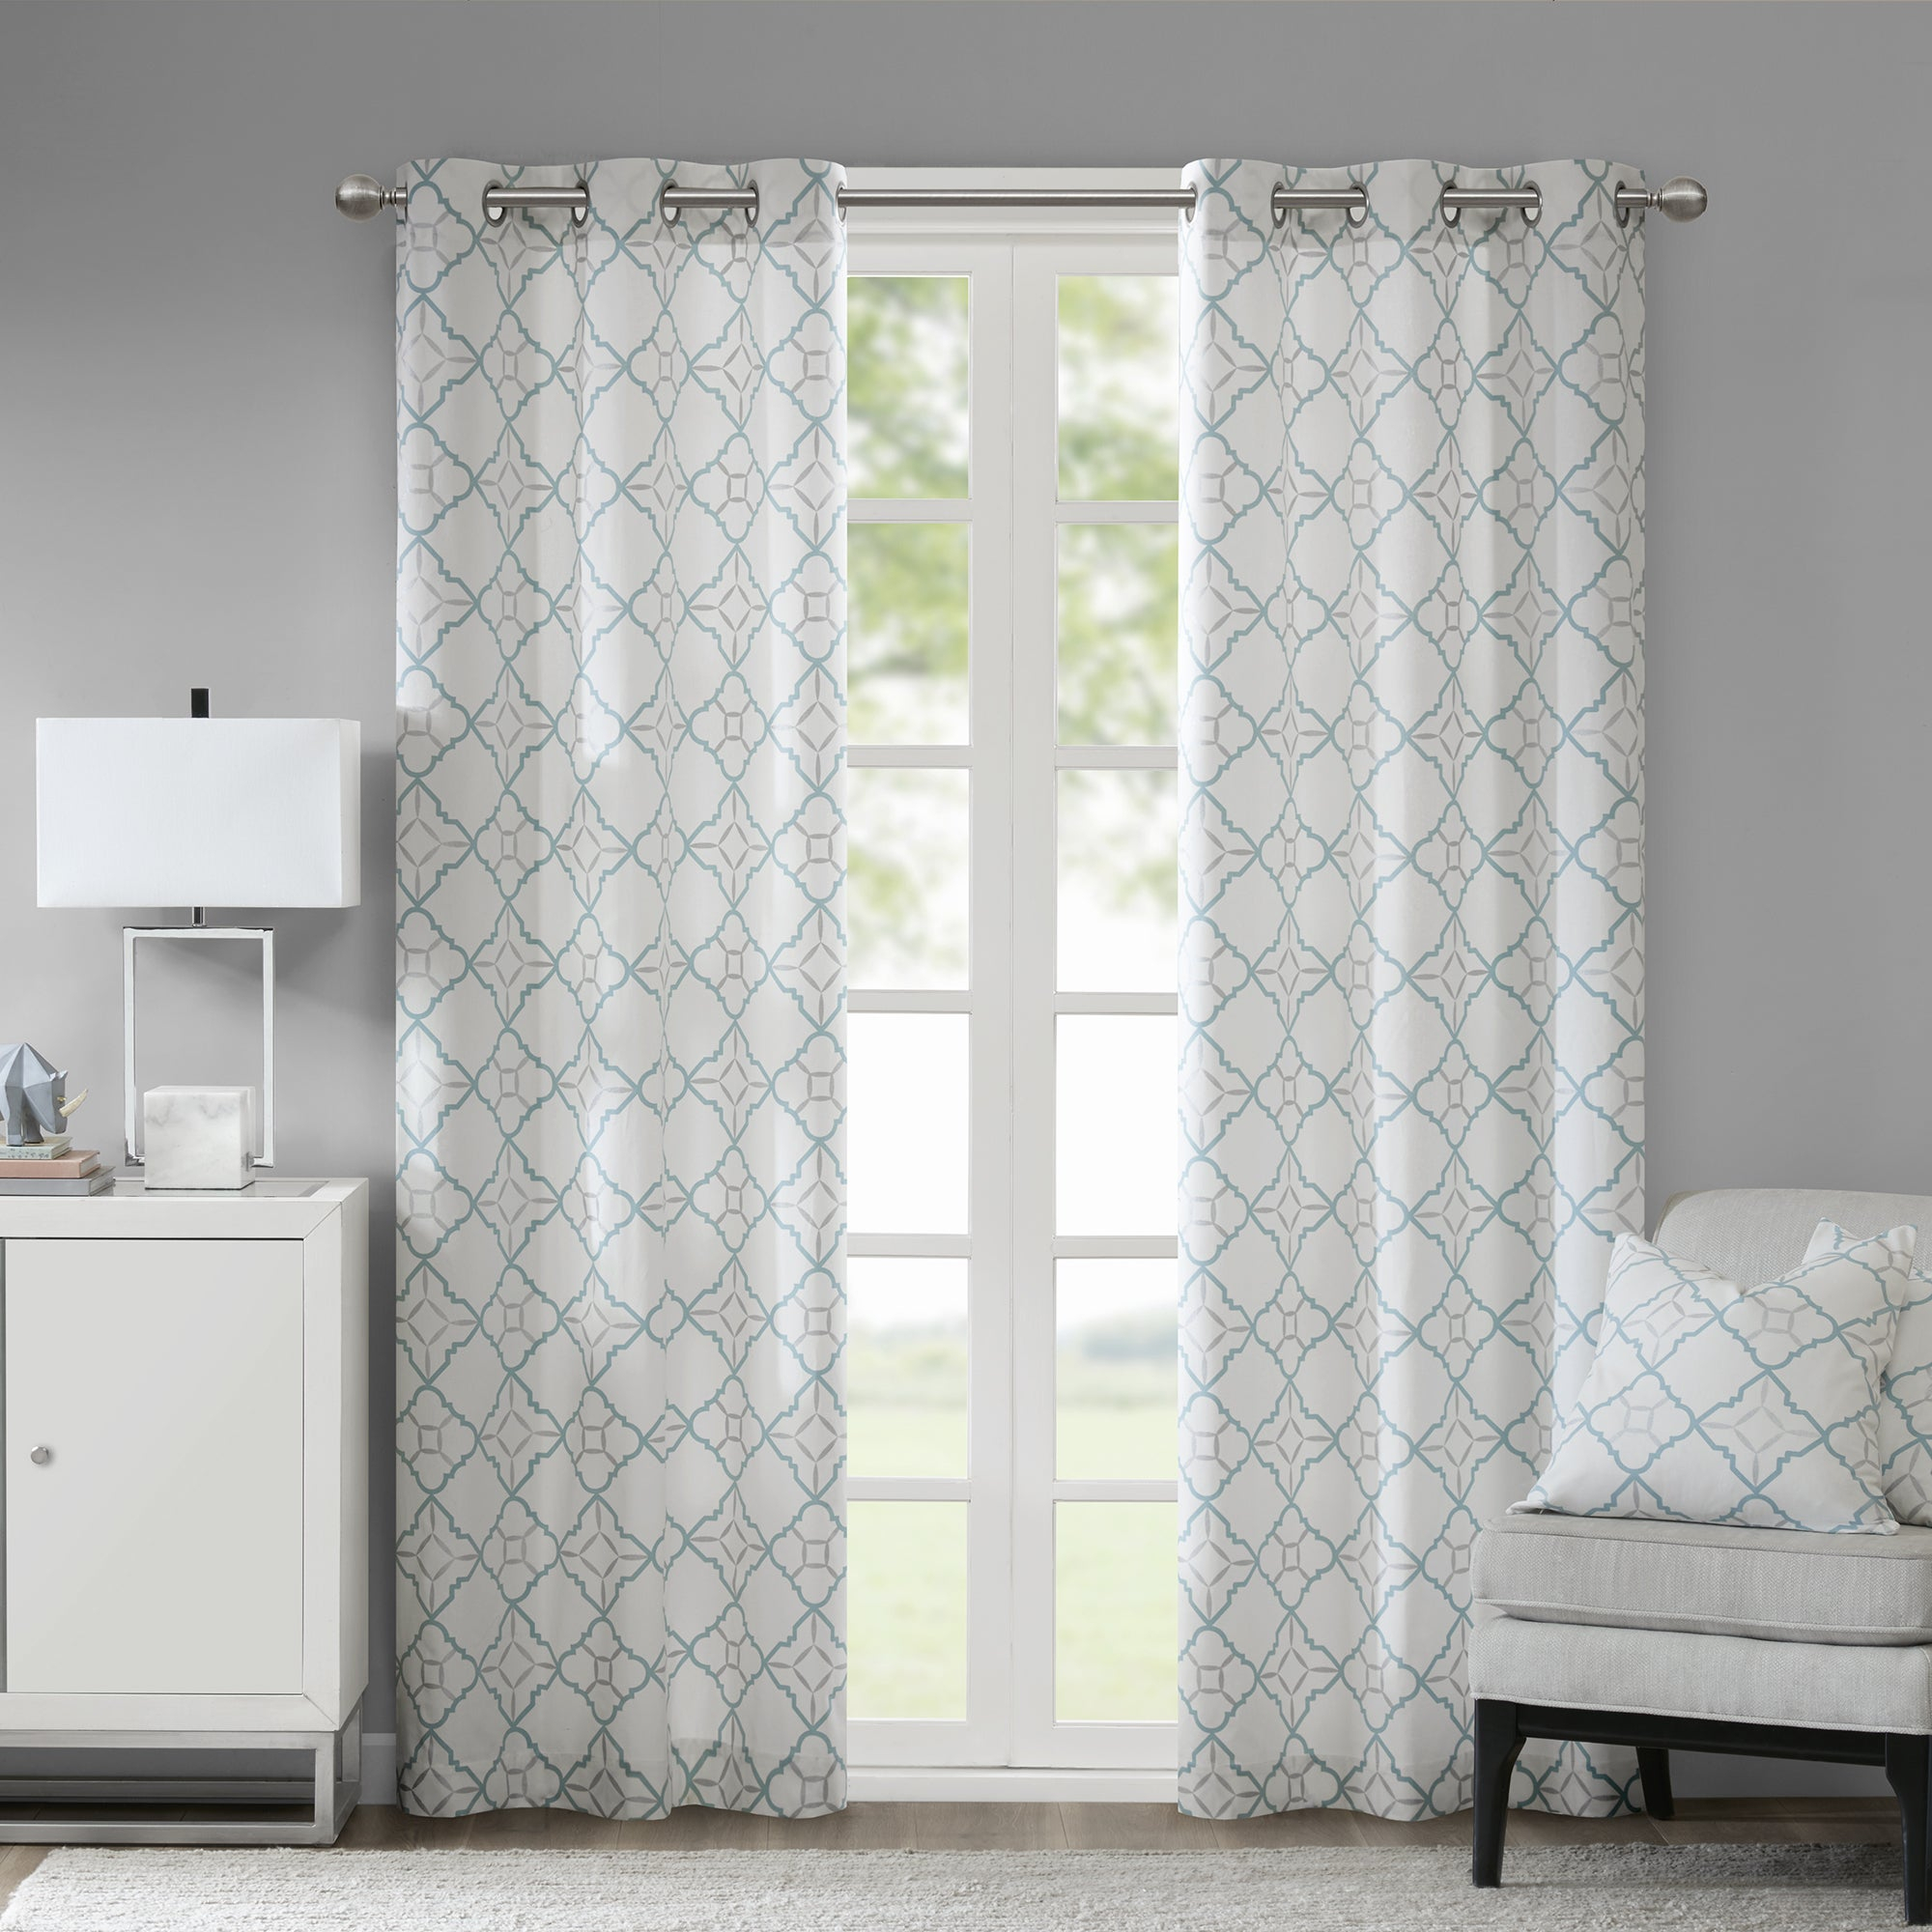 Madison Park Jax Cotton Printed Curtain Panel Pair Within Essentials Almaden Fretwork Printed Grommet Top Curtain Panel Pairs (View 12 of 20)